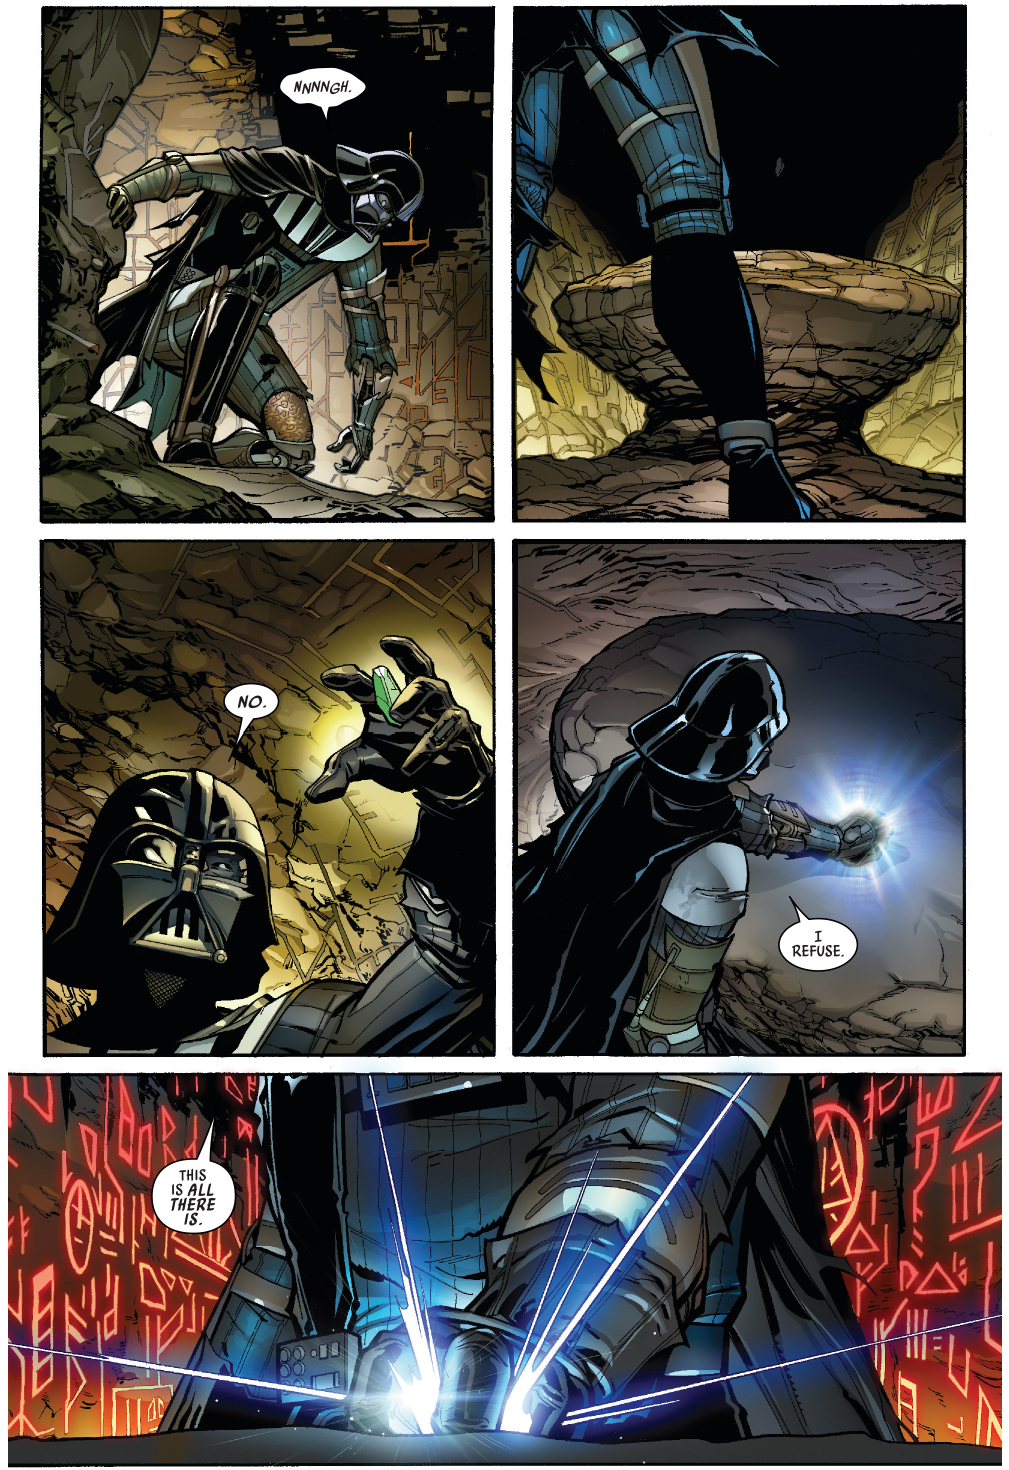 Darth Vader Turns A Lightsaber Crystal Red Comicnewbies